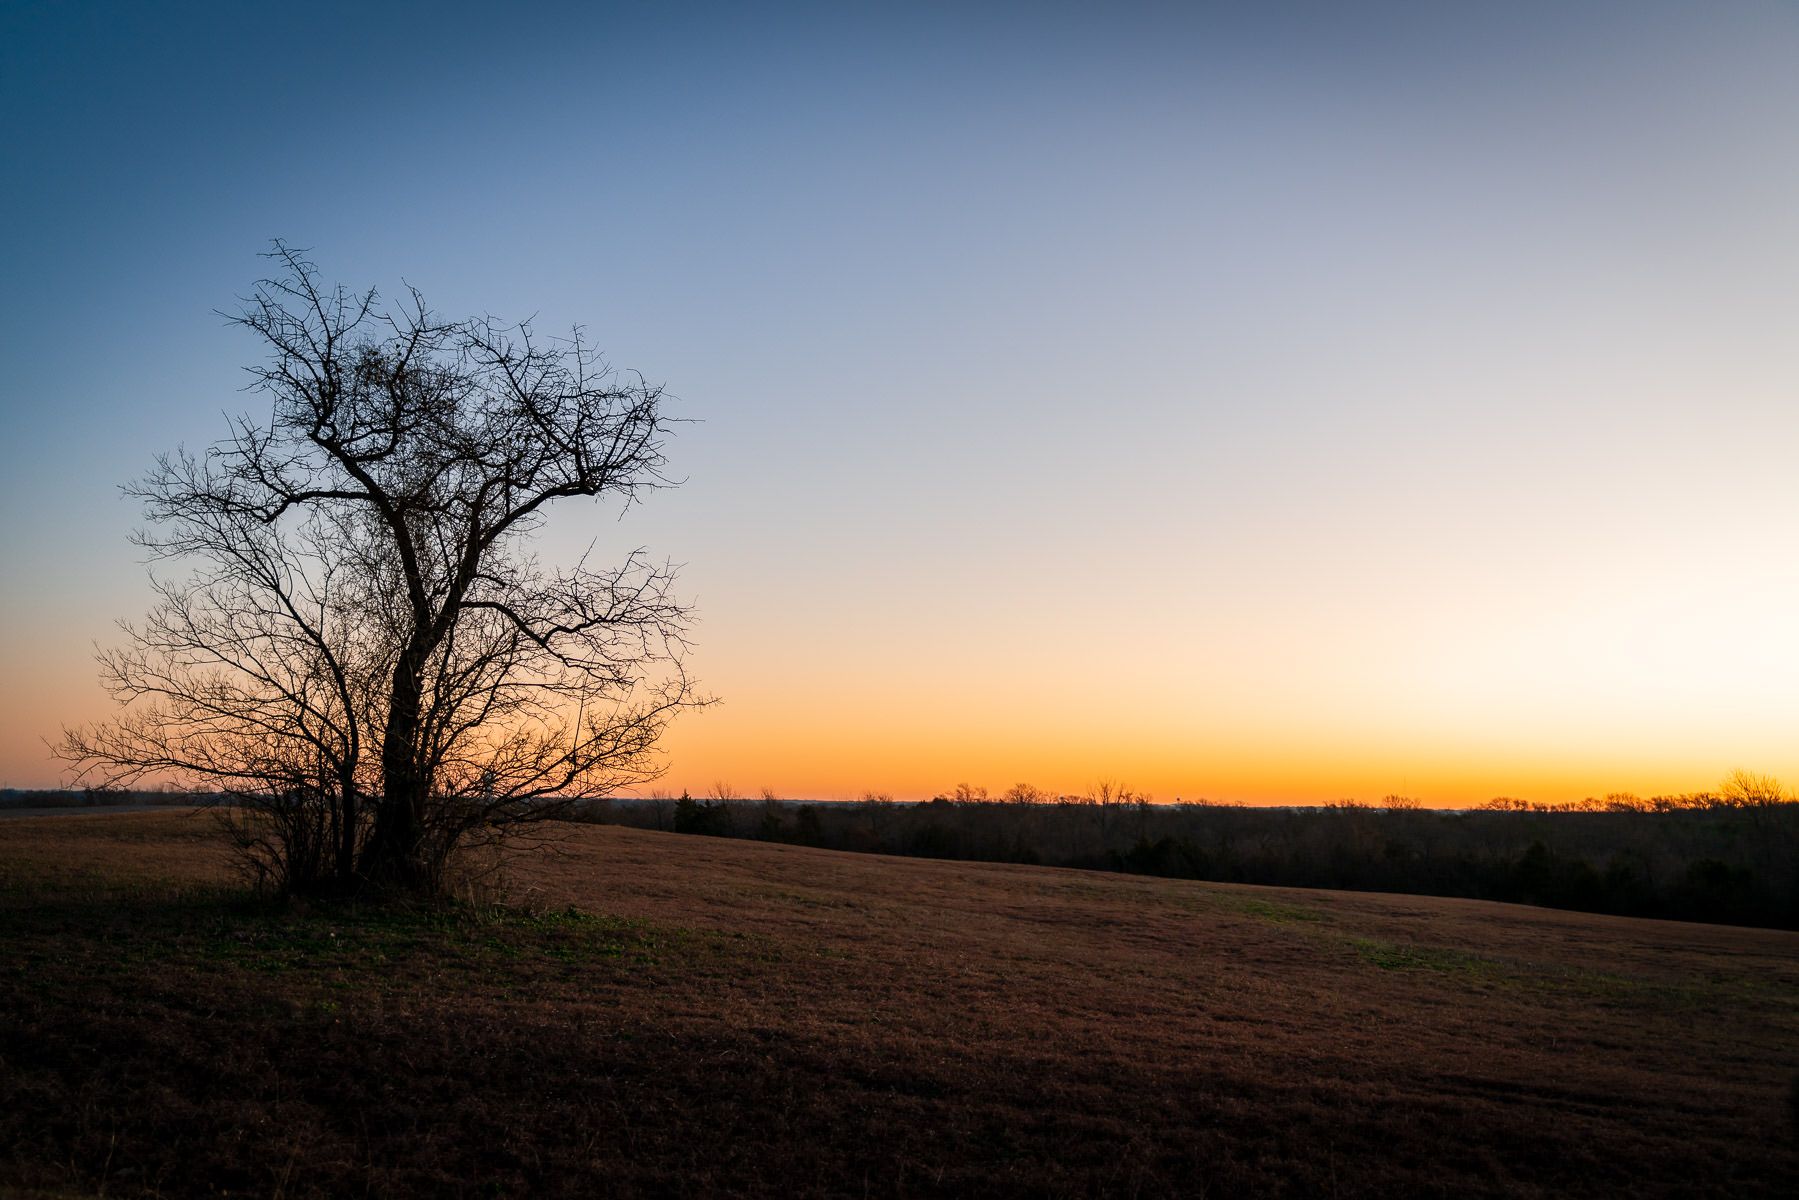 The sun rises on McKinney, Texas' Erwin Park.